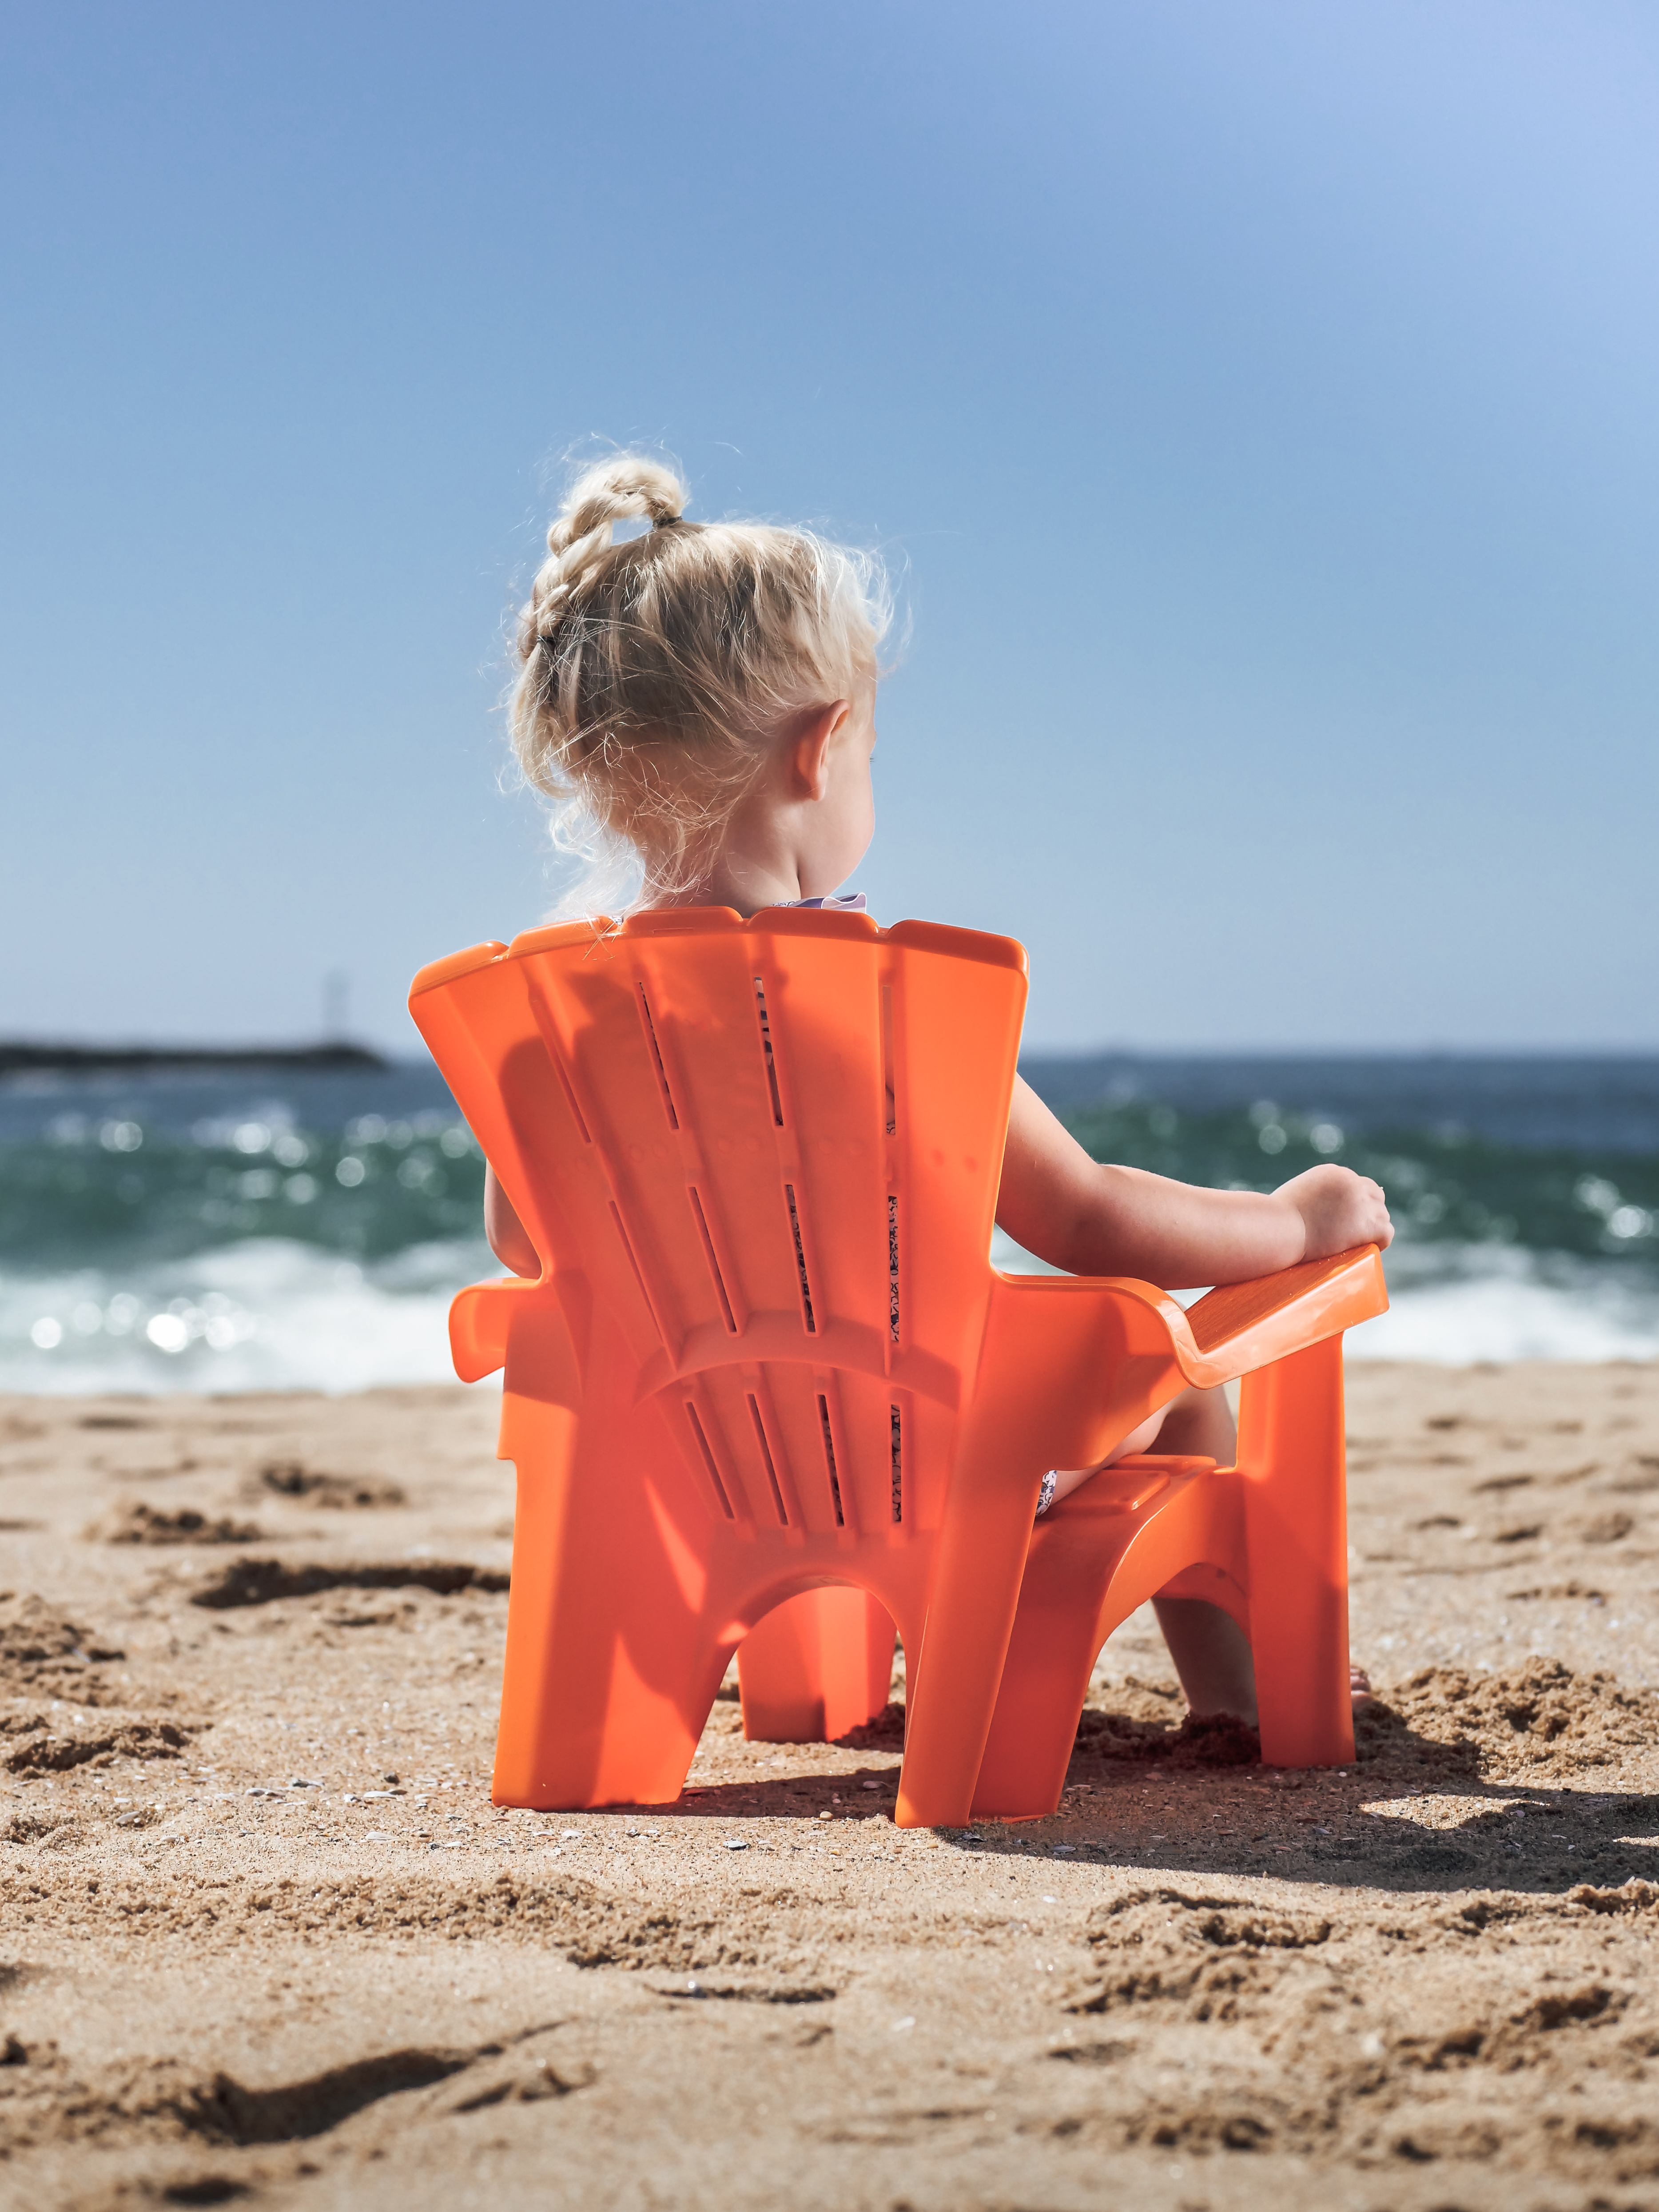 girl sitting on red plastic chair on beach